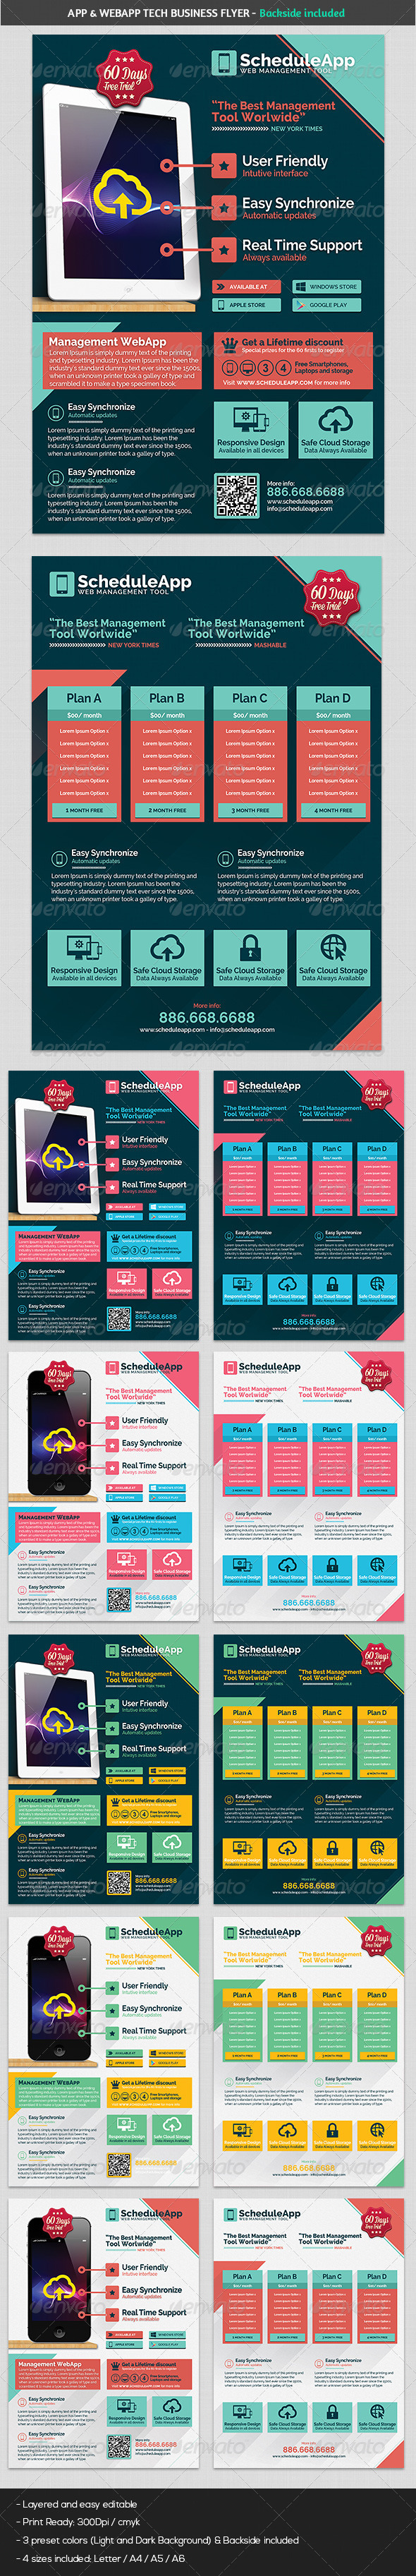 GraphicRiver Web App & Technology Flat Design Business Flyer 5455842